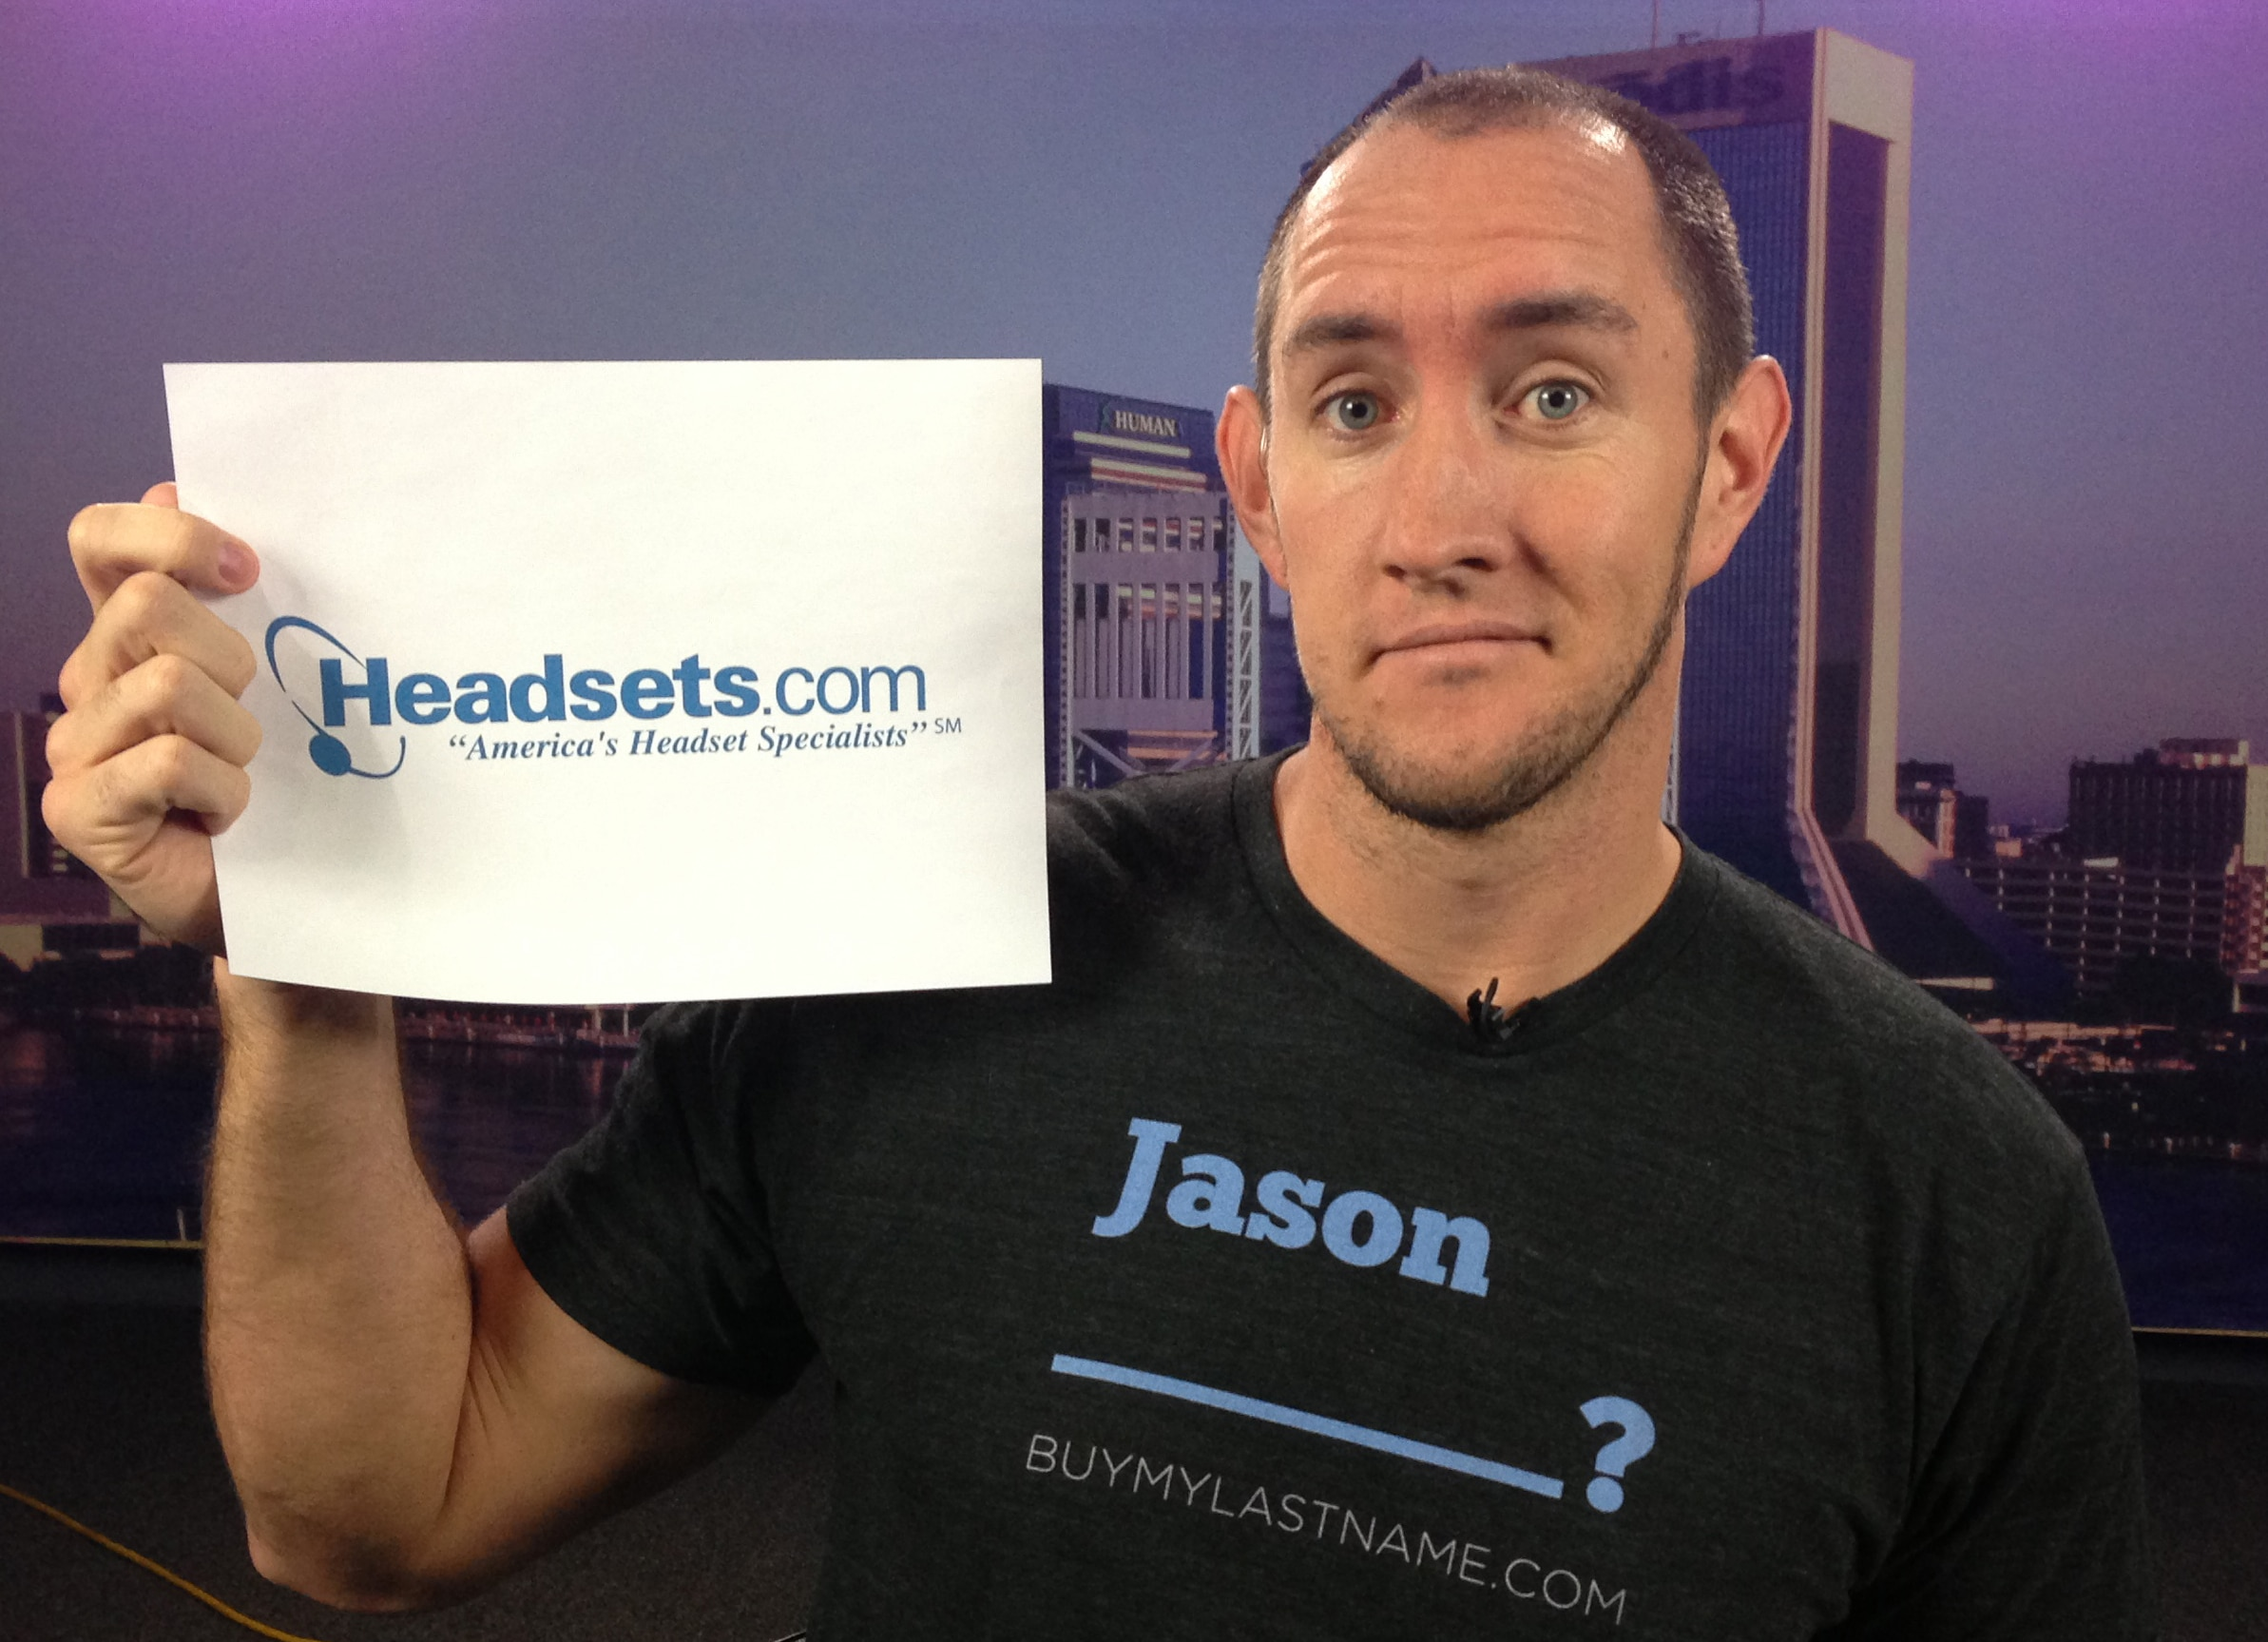 Guy sells his last name - Jason Headsetsdotcom